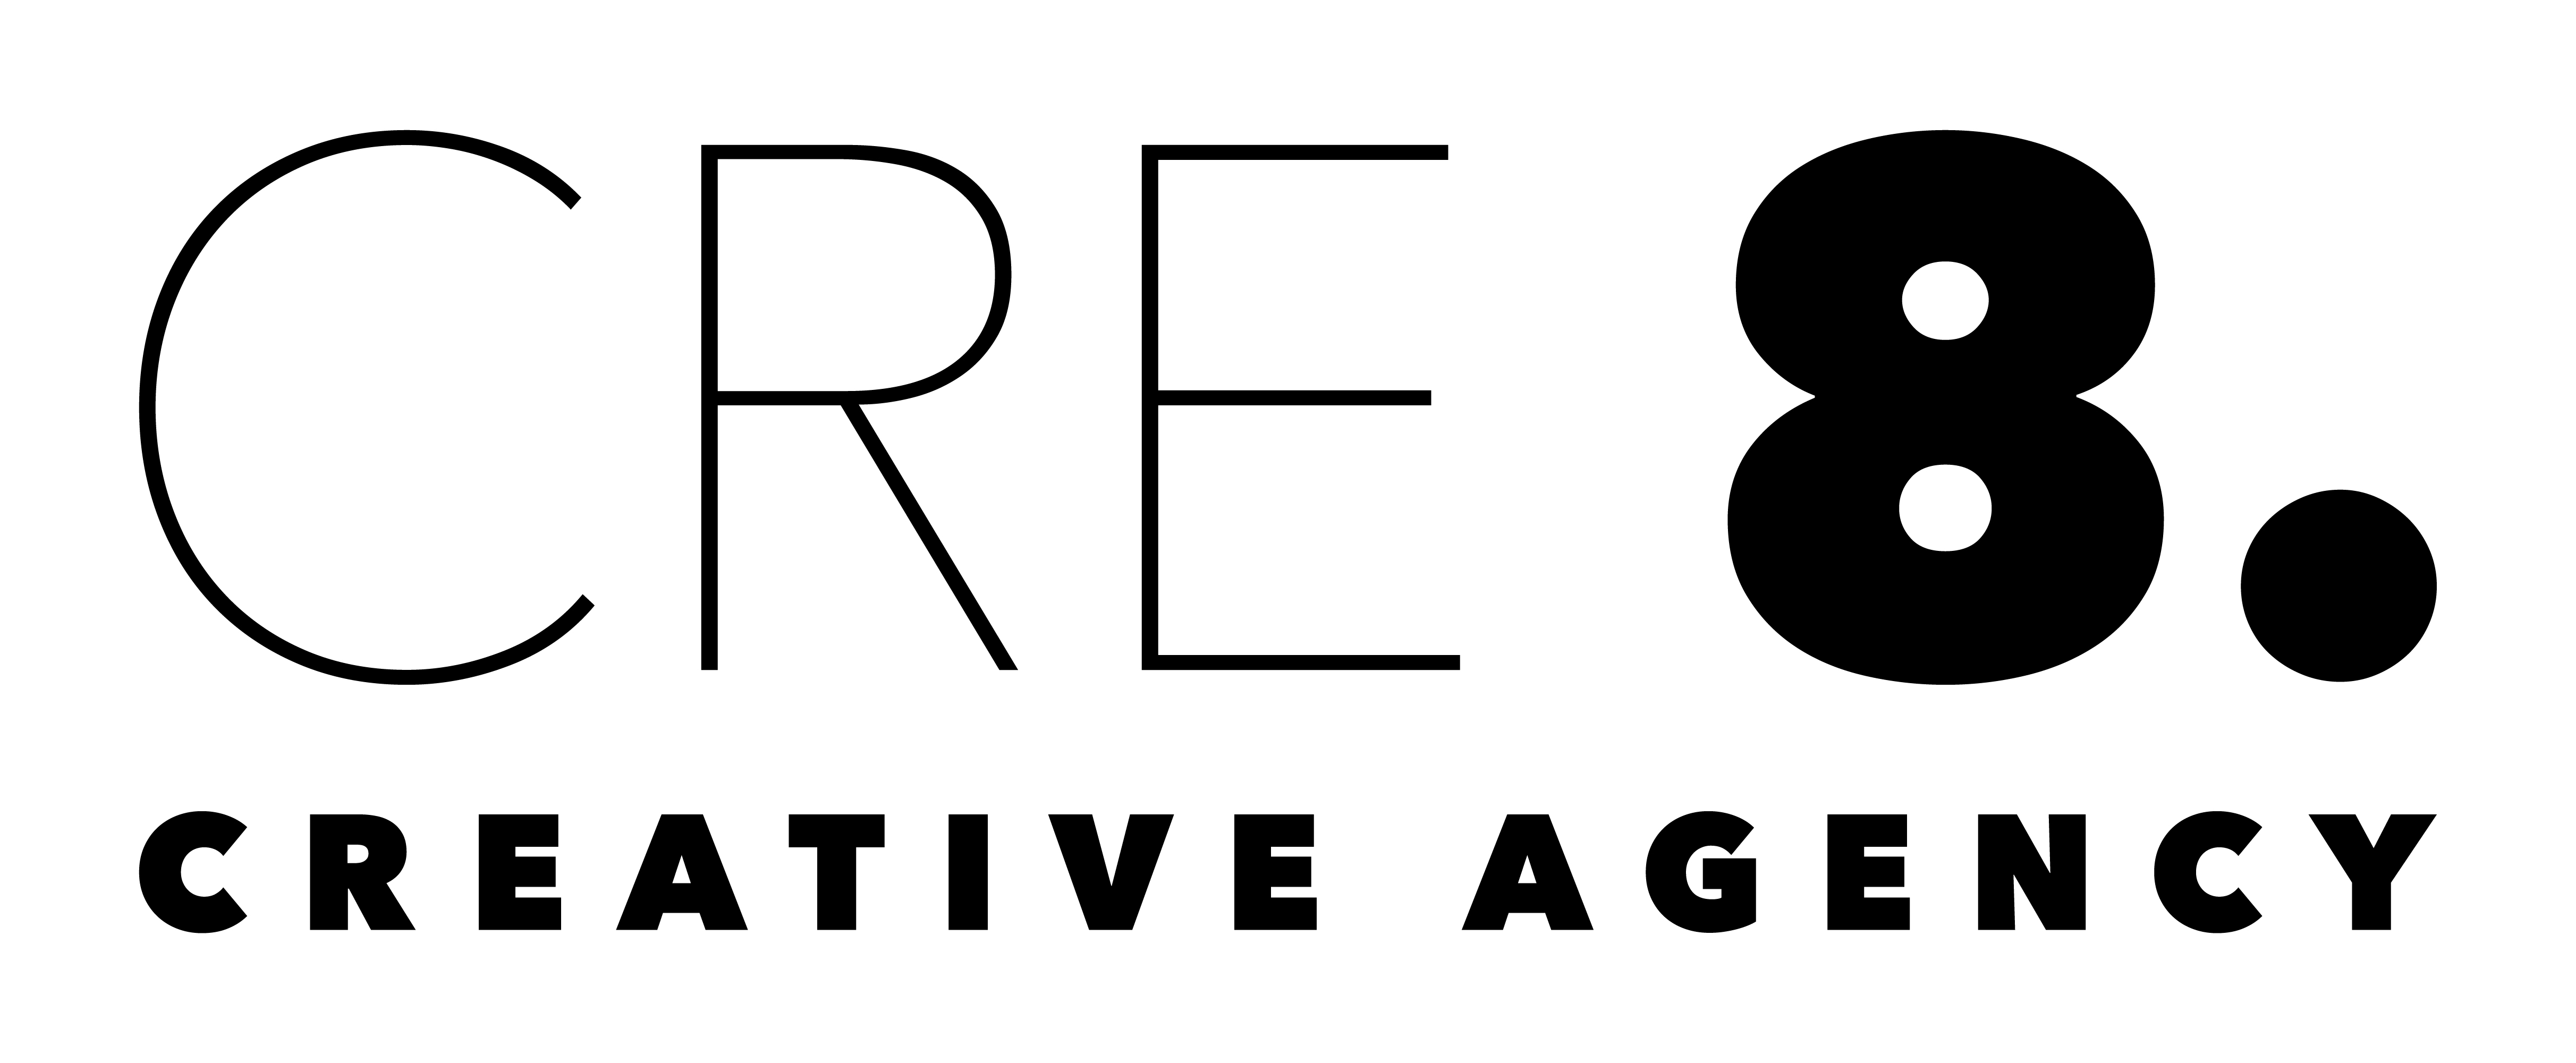 CRE 8 Agency